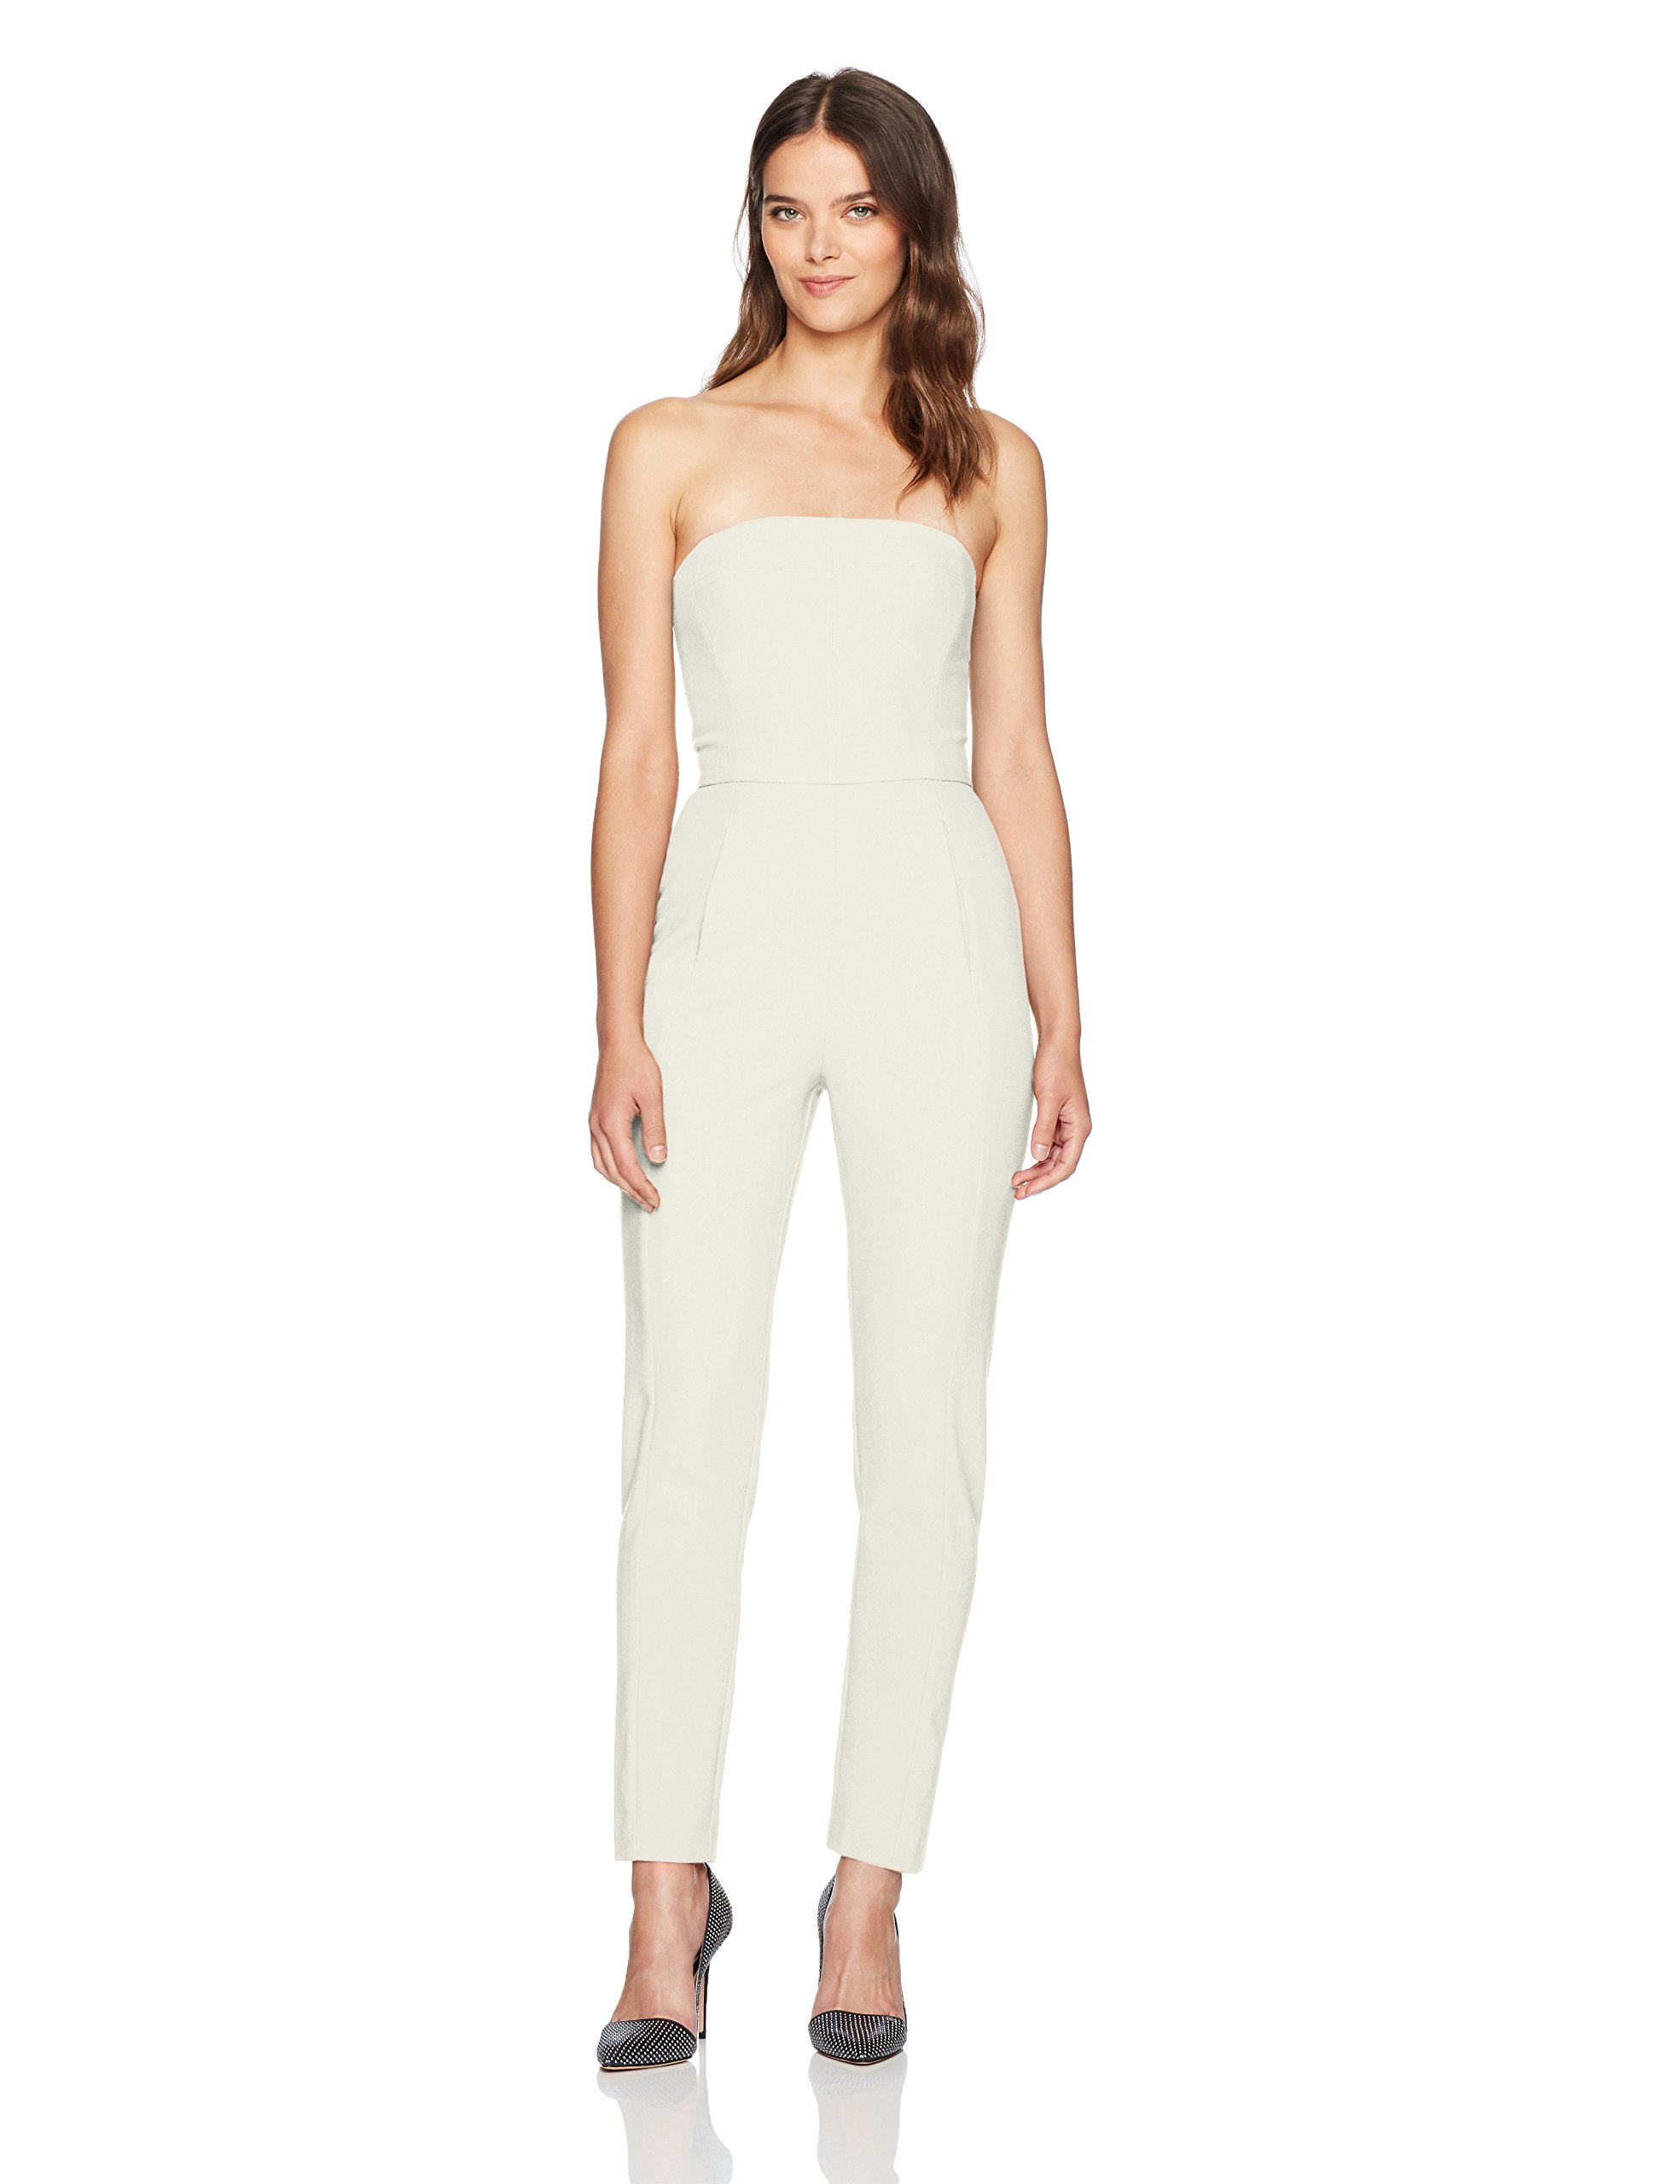 Black Halo Women's Iris Jumpsuit, Porcelain, 8